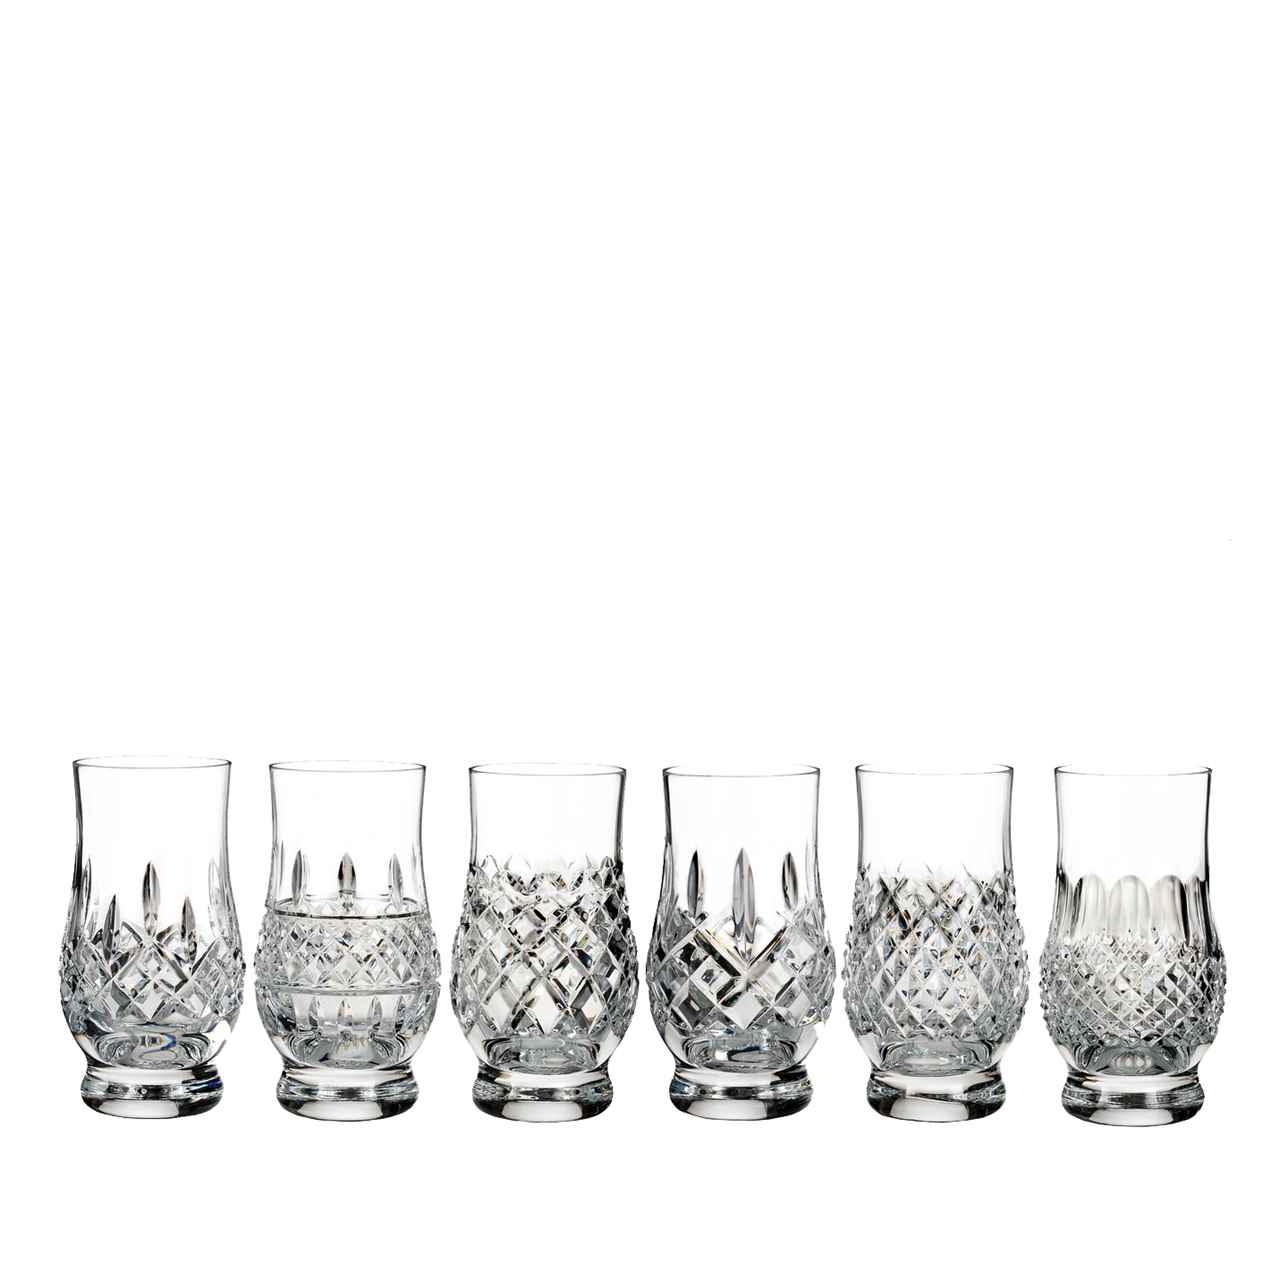 Lismore Connoisseur Heritage Footed Tasting Tumbler, Set of 6